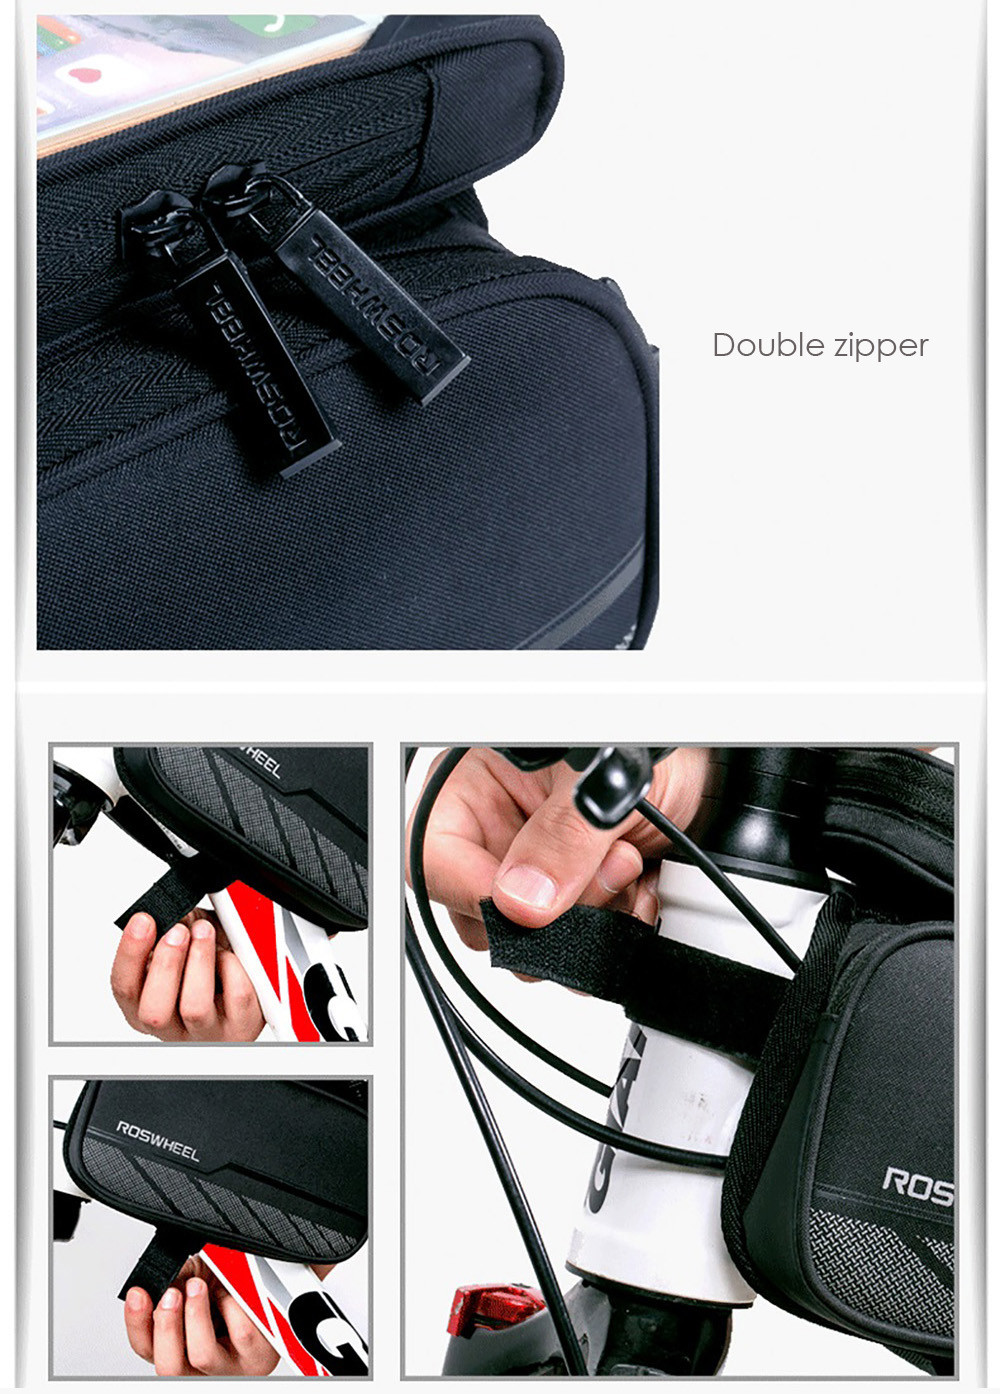 ROSWHEEL Bike Front Tube Phone Bag Double Pocket 5.5 inch Touch Screen Riding Cycling Supplies